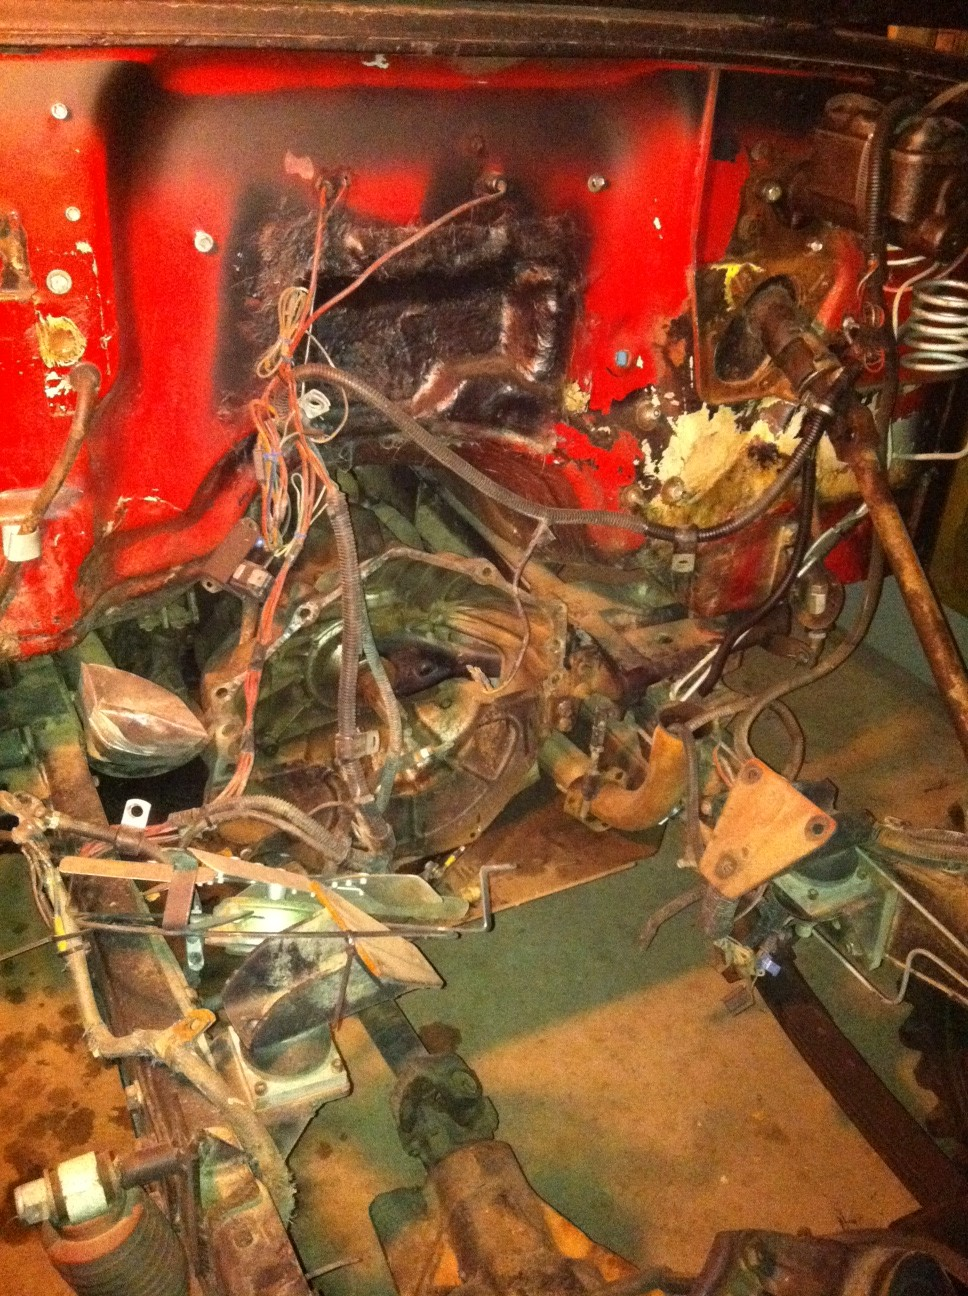 Background Info Jeep Cj5 Project Cen Tech Wiring Harness Cj Current State Of My Engine Bay It Is Uglier Than Sin Right Now Because Its Chillin On Ice In The Mn Winter Stuffed A Garage With First Coat